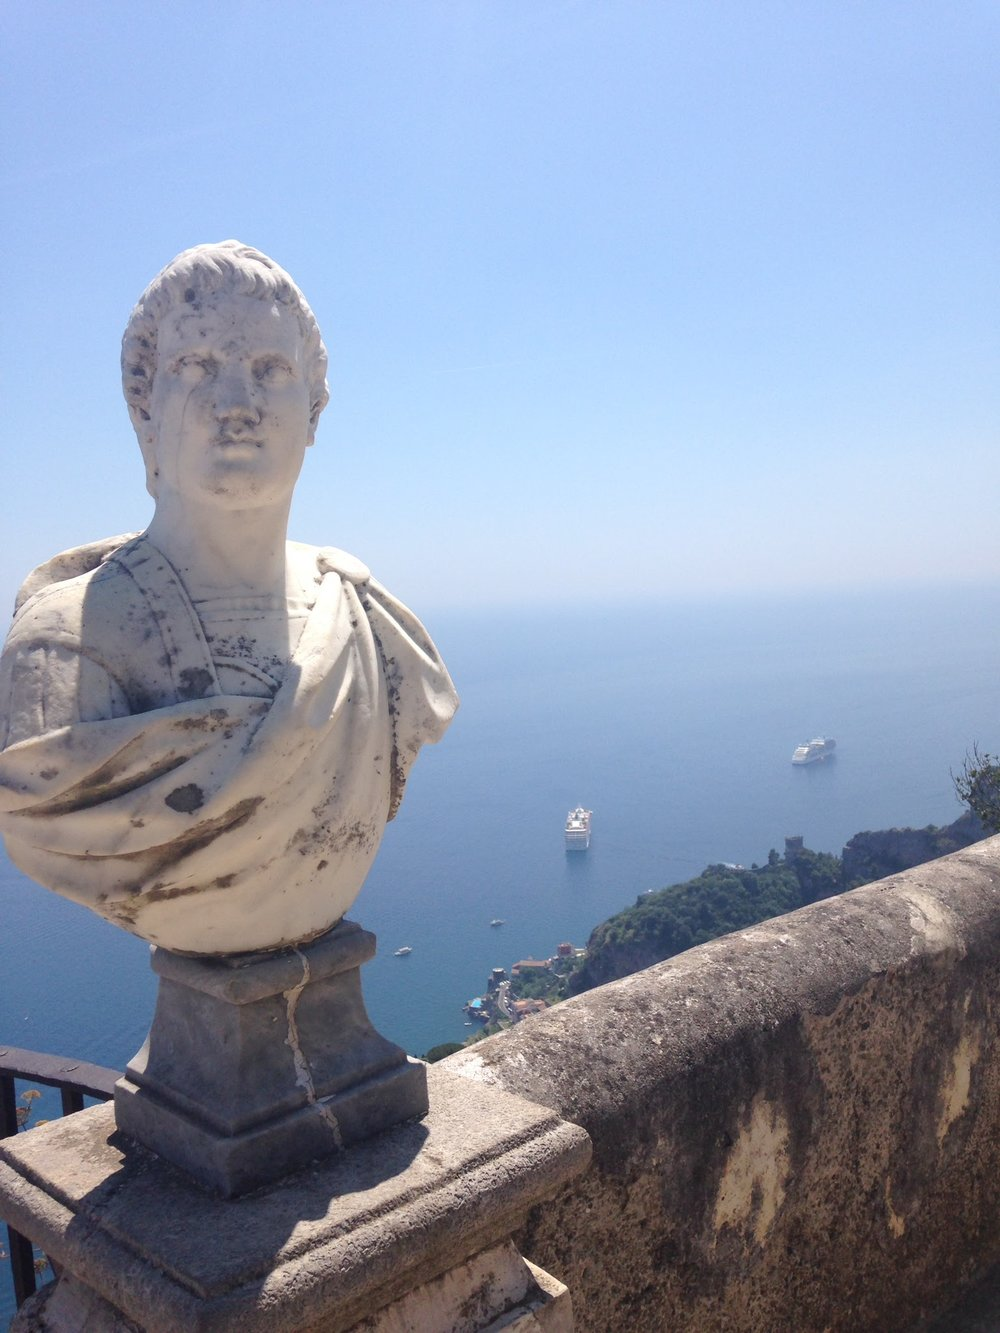 Looking down from the Villa Cimbrone in Ravello